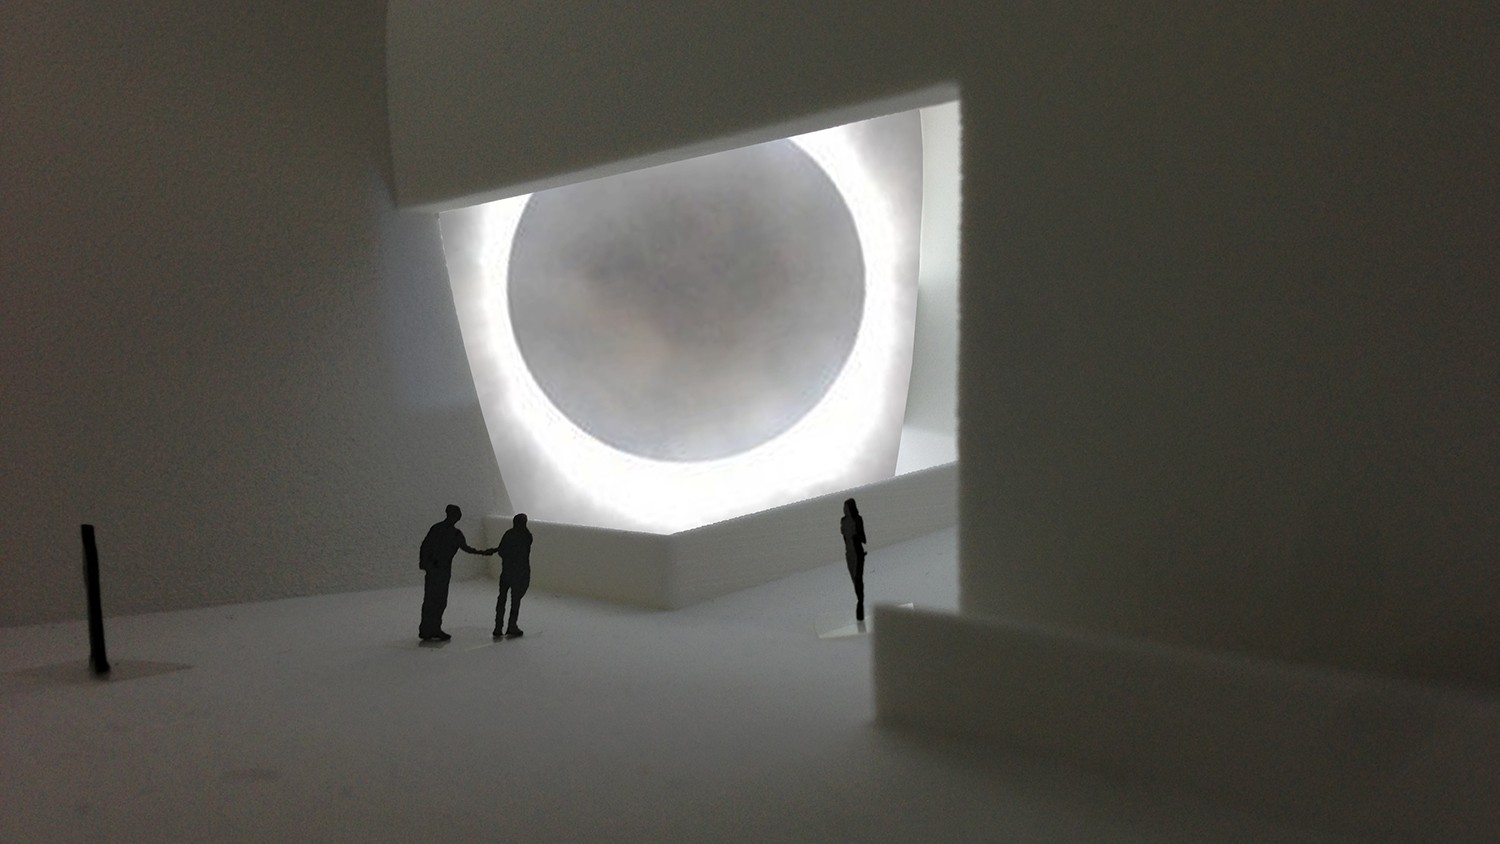 https://s3.us-east-2.amazonaws.com/steven-holl/uploads/projects/project-images/StevenHollArchitects_Tianjin_image_LB_WH.jpg